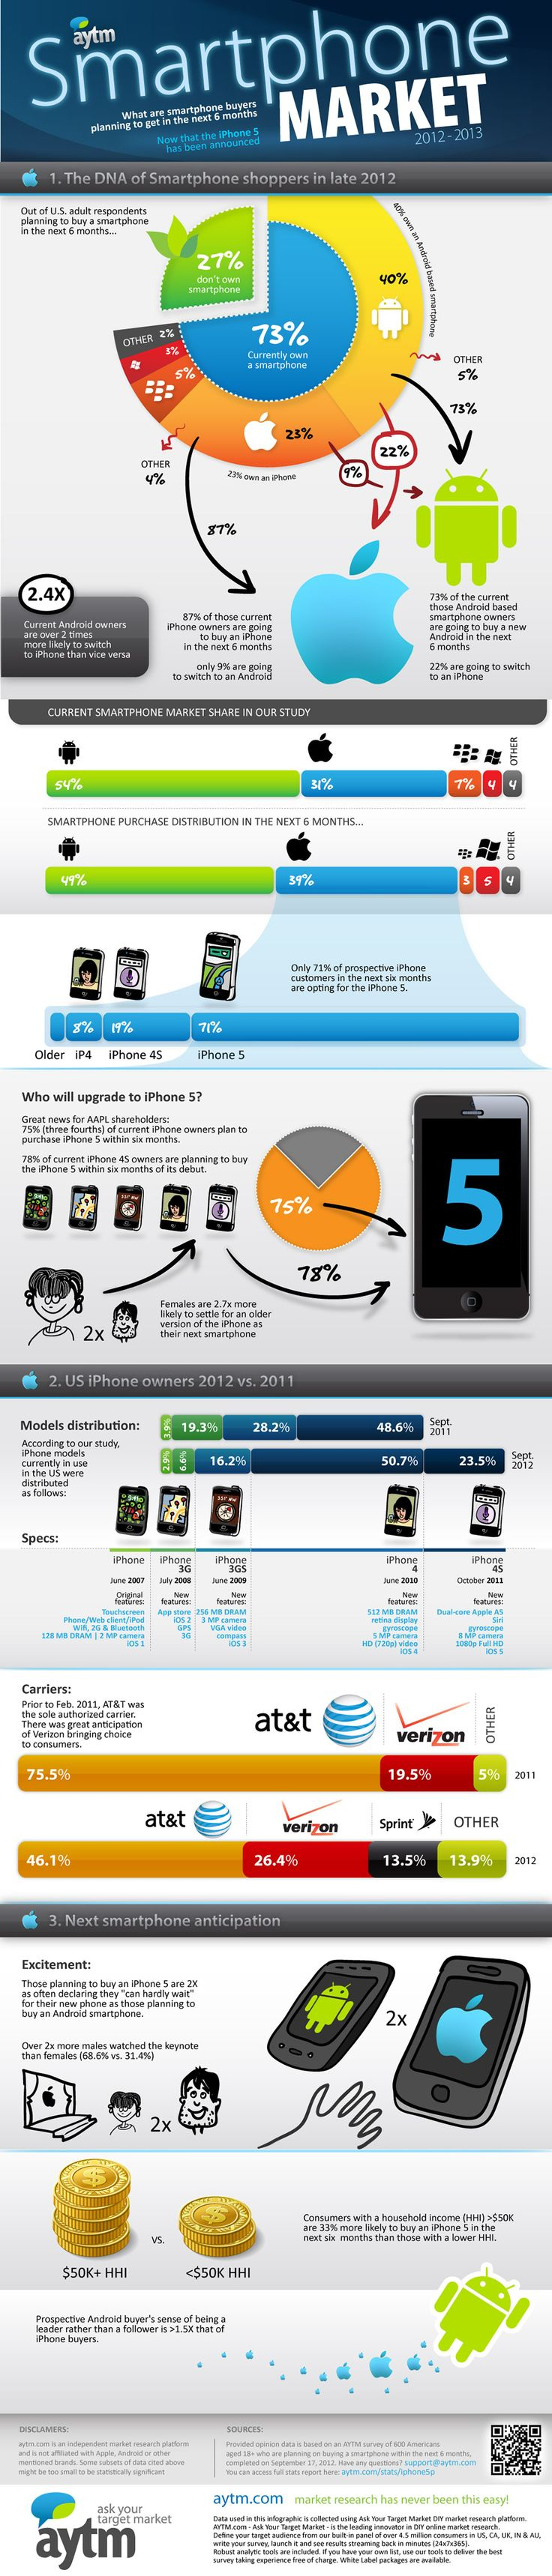 how the #iPhone5 has affected the #smartphone market